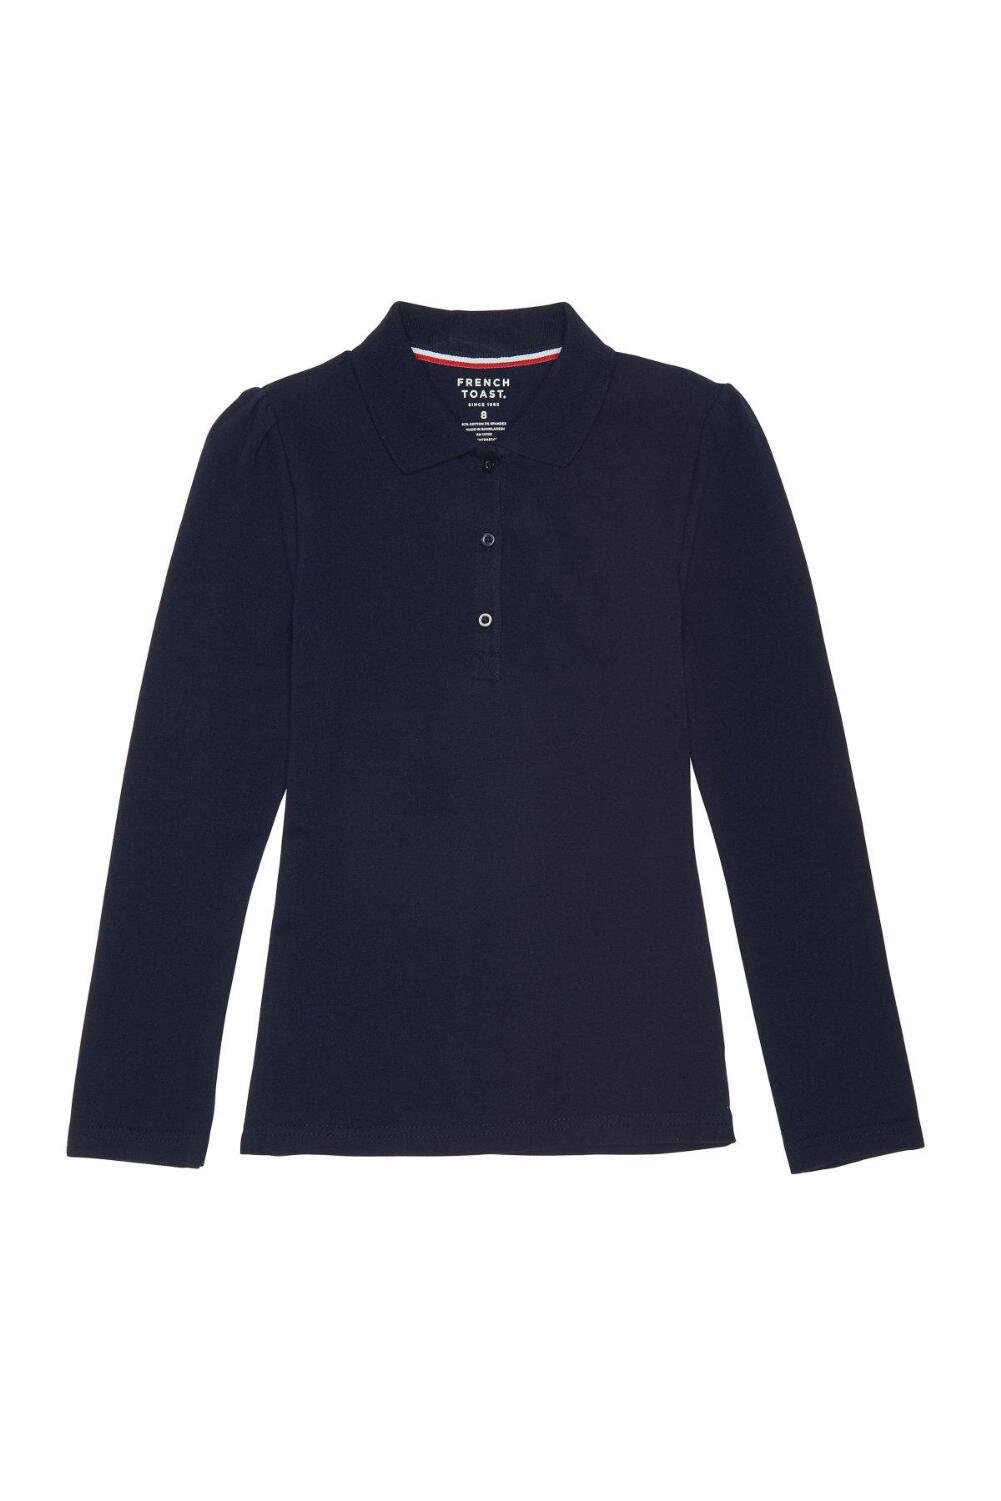 French Toast Big Girls' Long Sleeve Stretch Pique Polo, Navy, M (7/8)